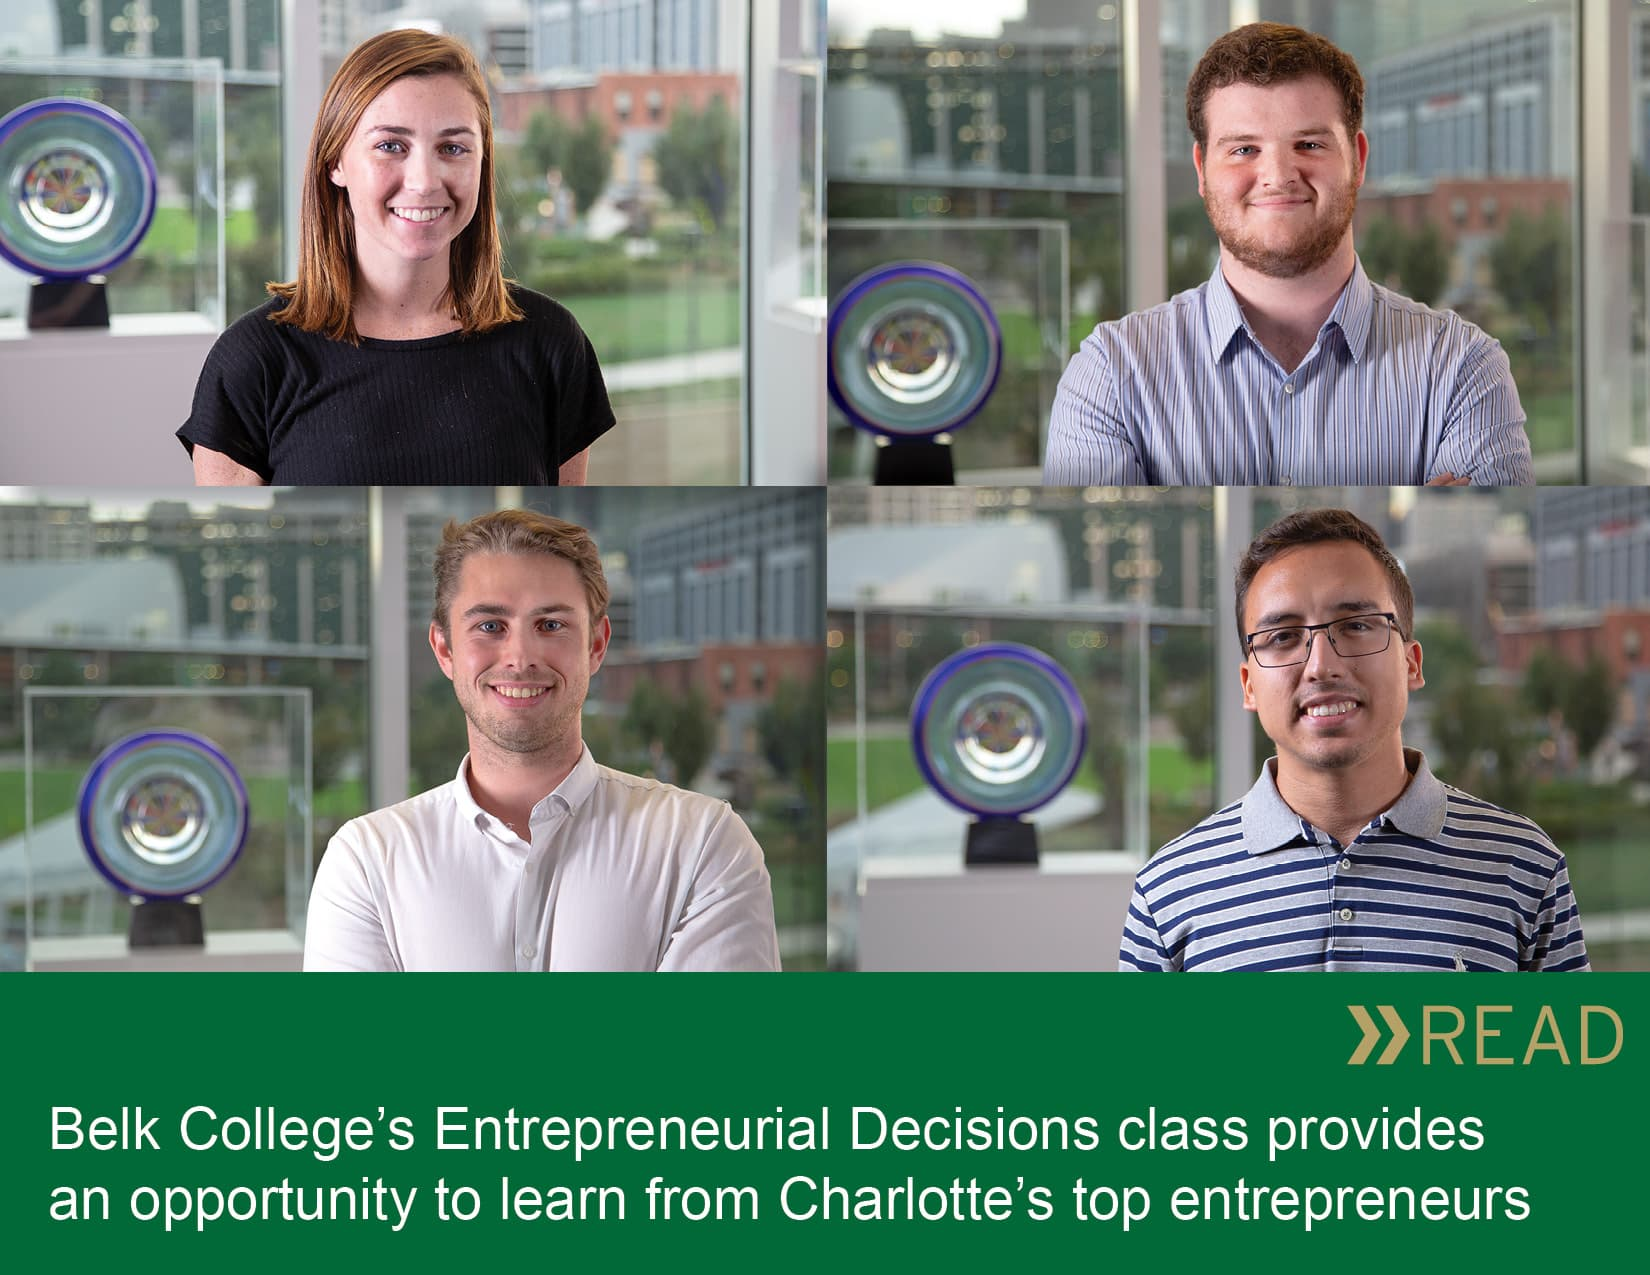 Entrepreneurial Decisions students